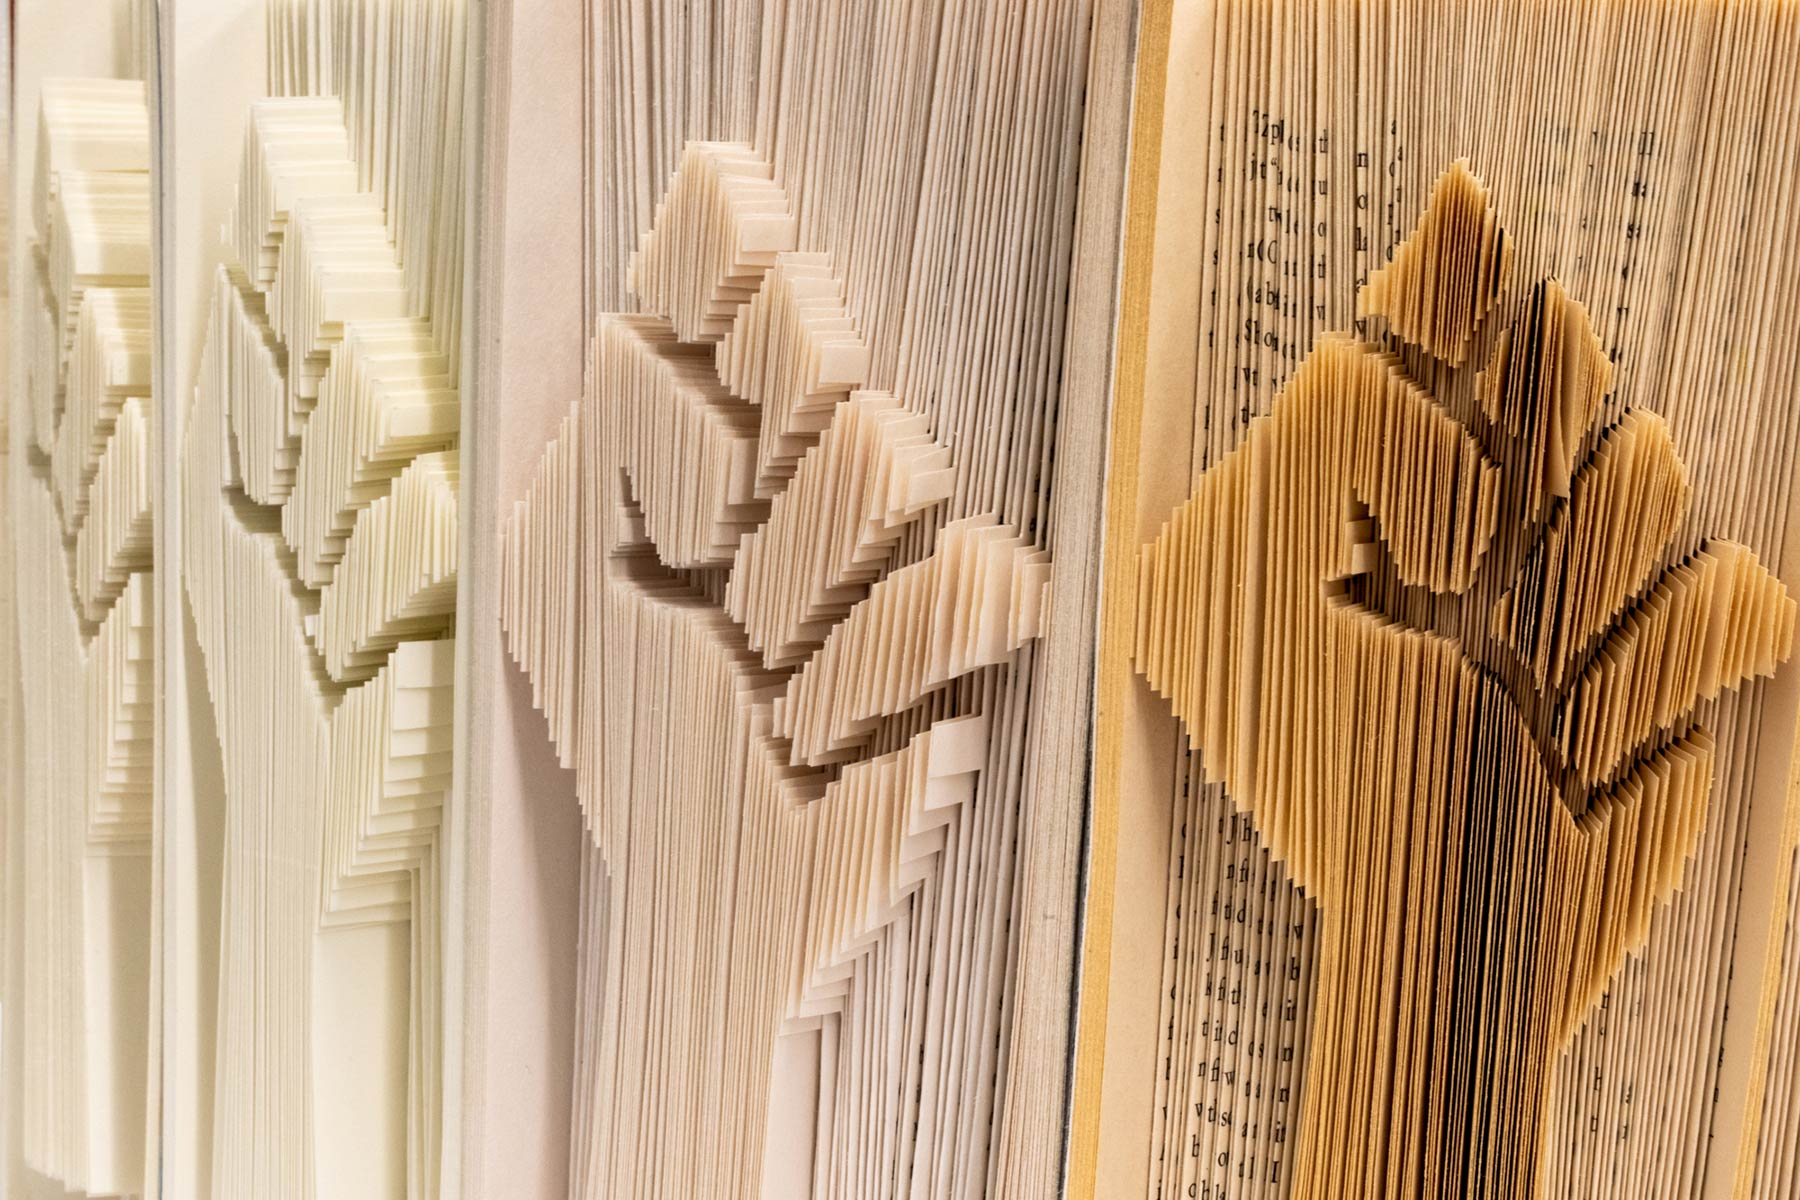 a close up of fine book sculpture showing a closed fist carved into the pages of the book